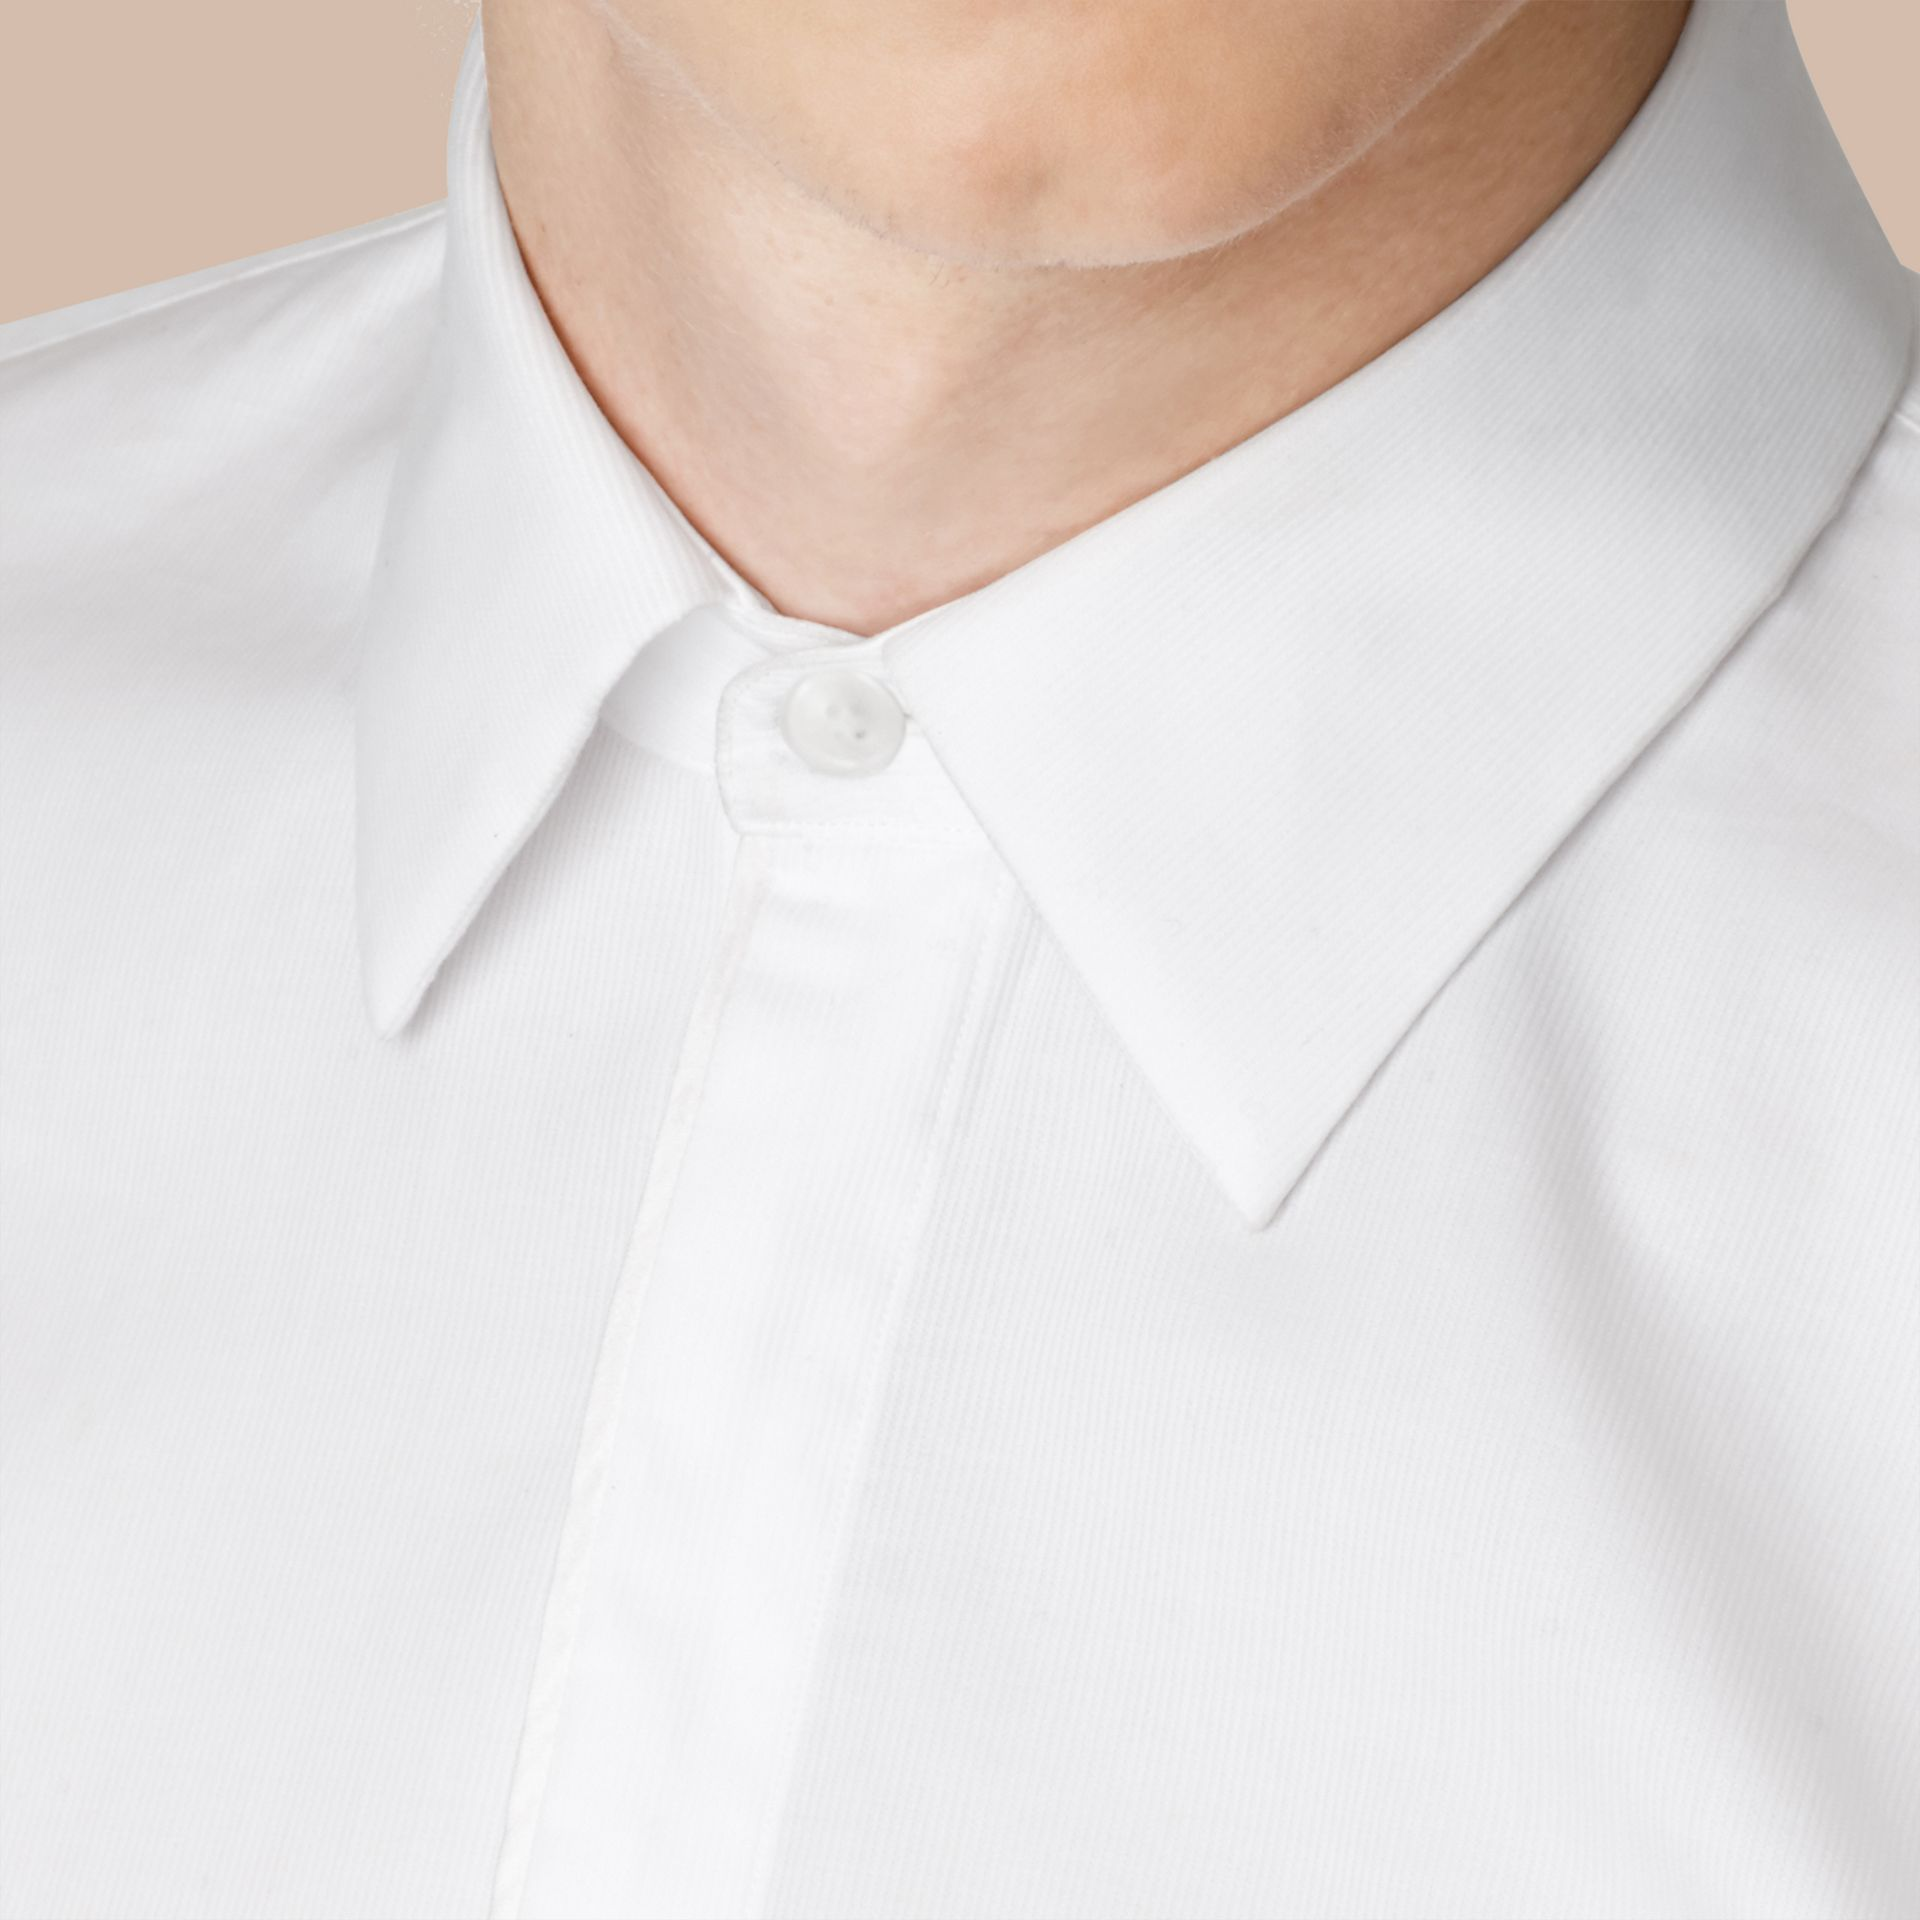 Slim Fit Double-cuff Cotton Dress Shirt in White - Men | Burberry United States - gallery image 4